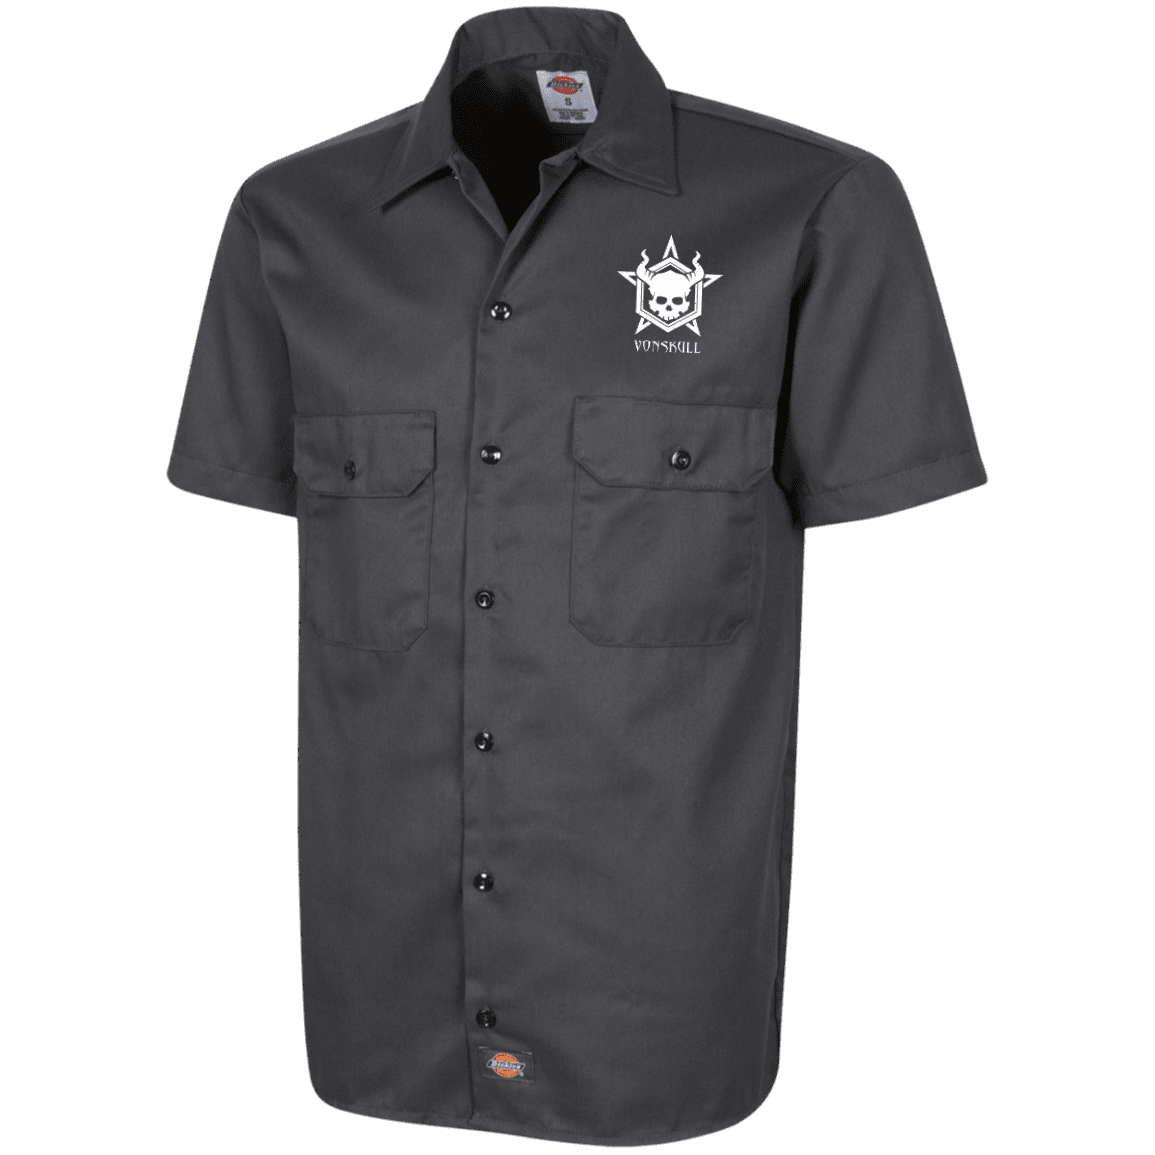 VonSkull Dickies Workshirt